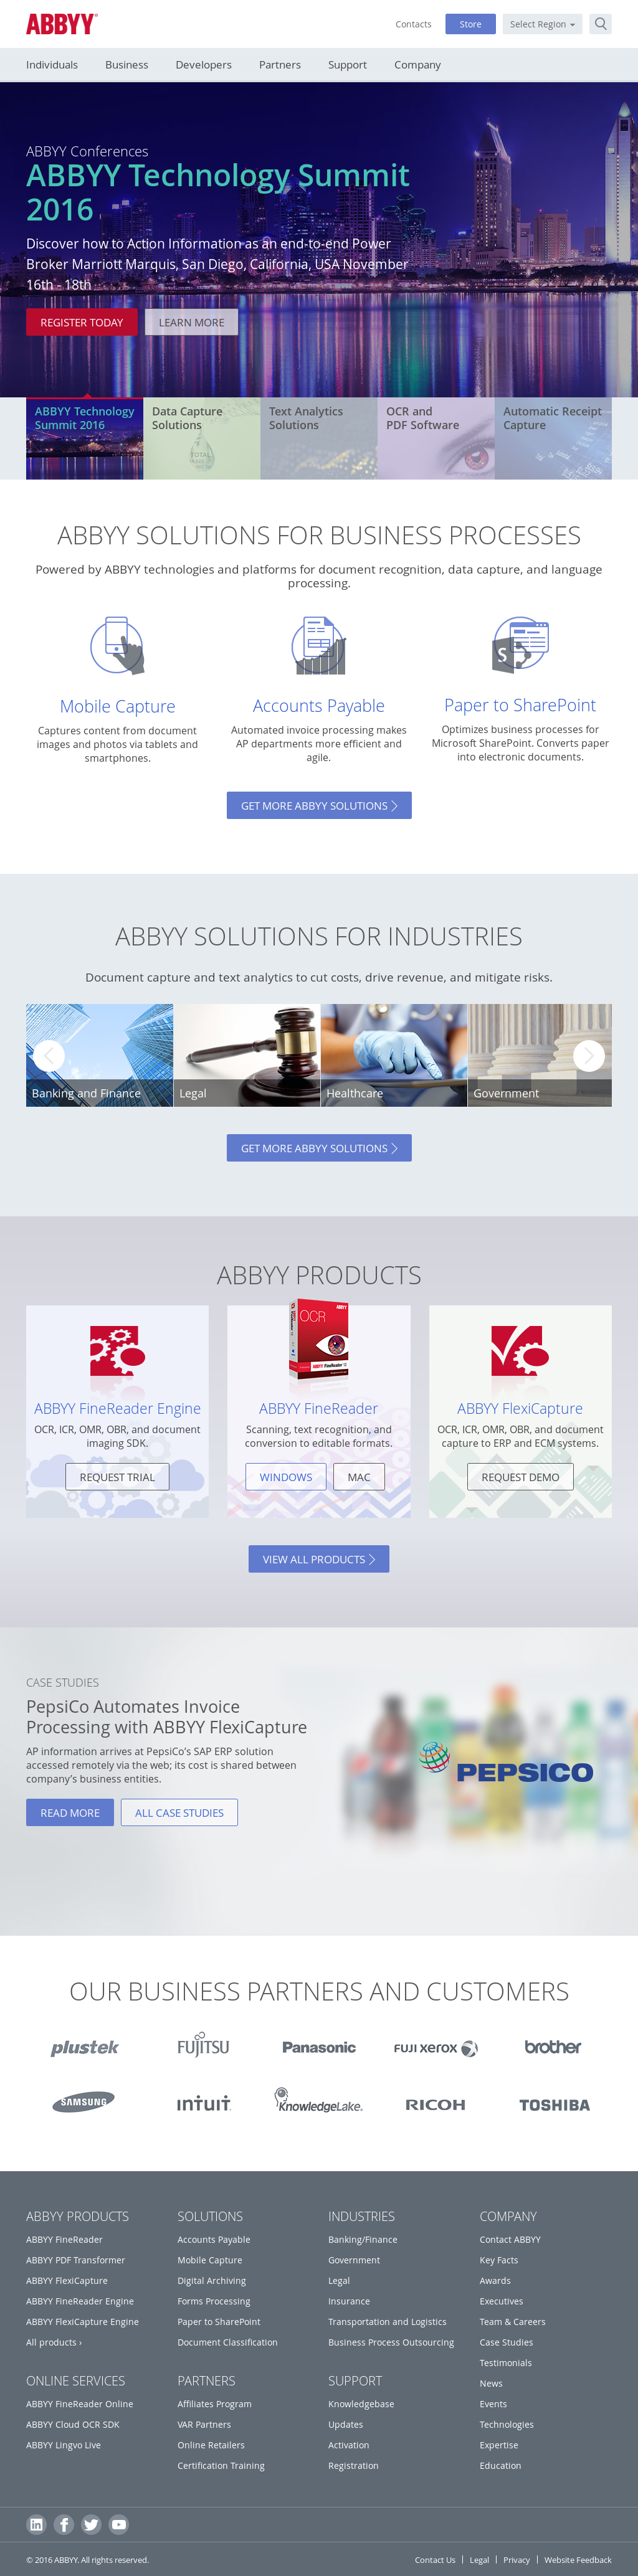 ABBYY Competitors, Revenue and Employees - Owler Company Profile